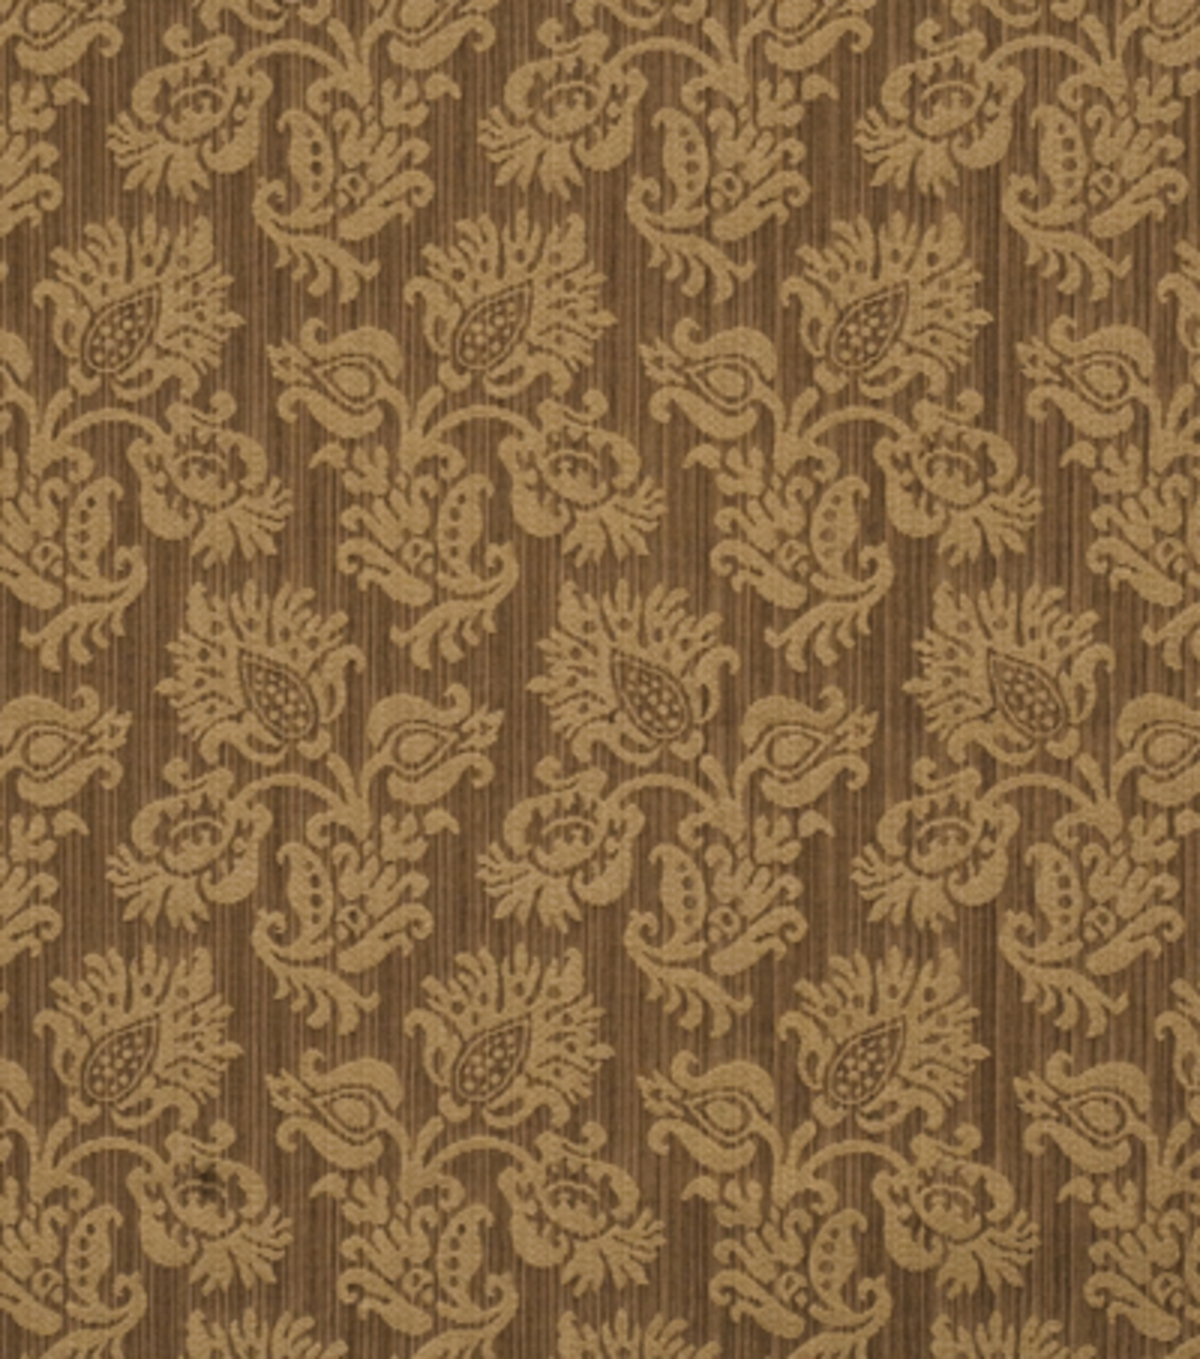 Home Decor 8\u0022x8\u0022 Fabric Swatch-Jaclyn Smith Planter-Caramel